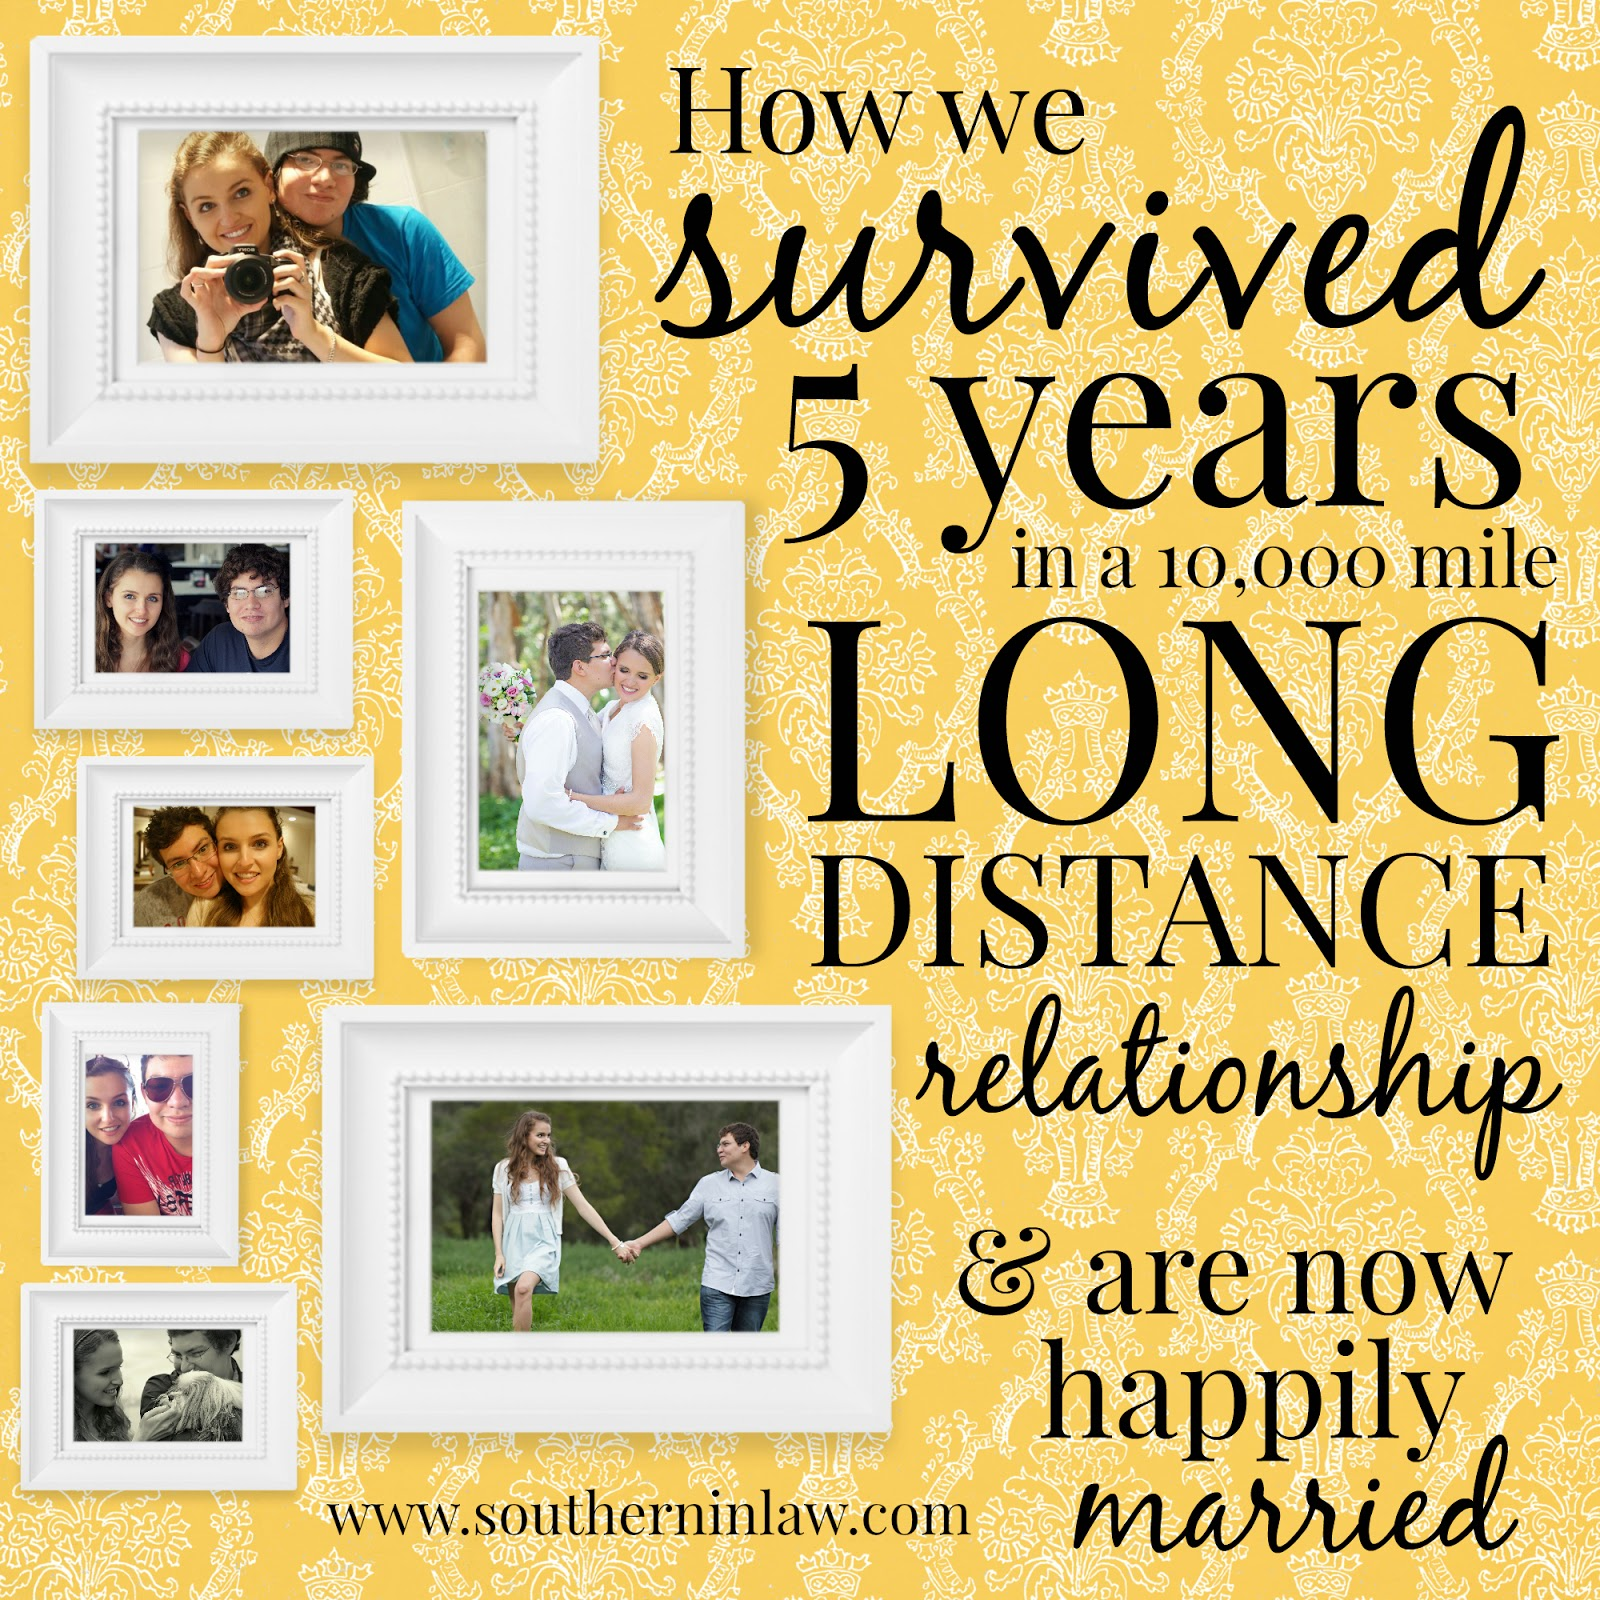 How We Survived 5 Years in a Long Distance Relationship - Tips for being in a Long Distance Relationship